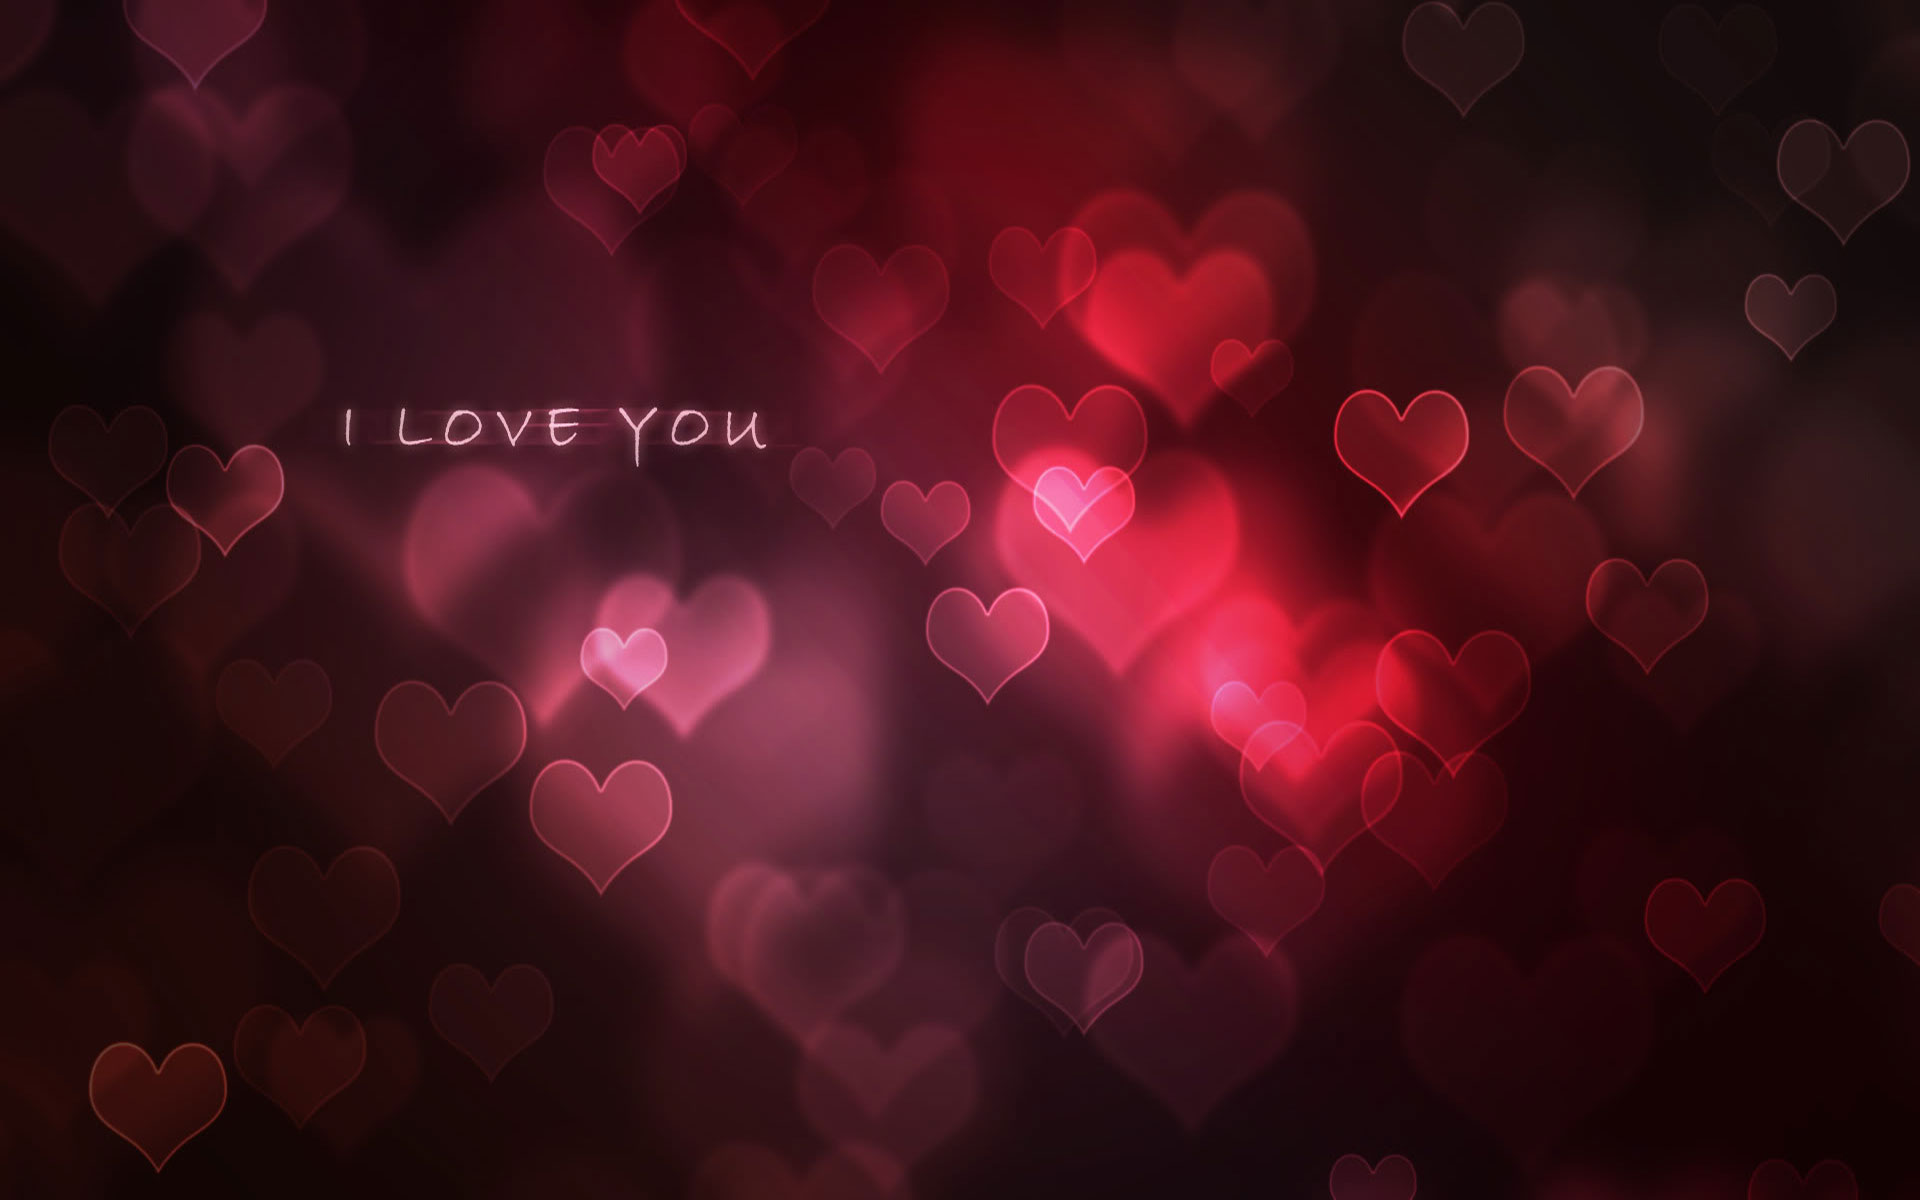 Love Wallpaper For Background : 25+ Free HD I Love You Wallpapers cute I Love You Images